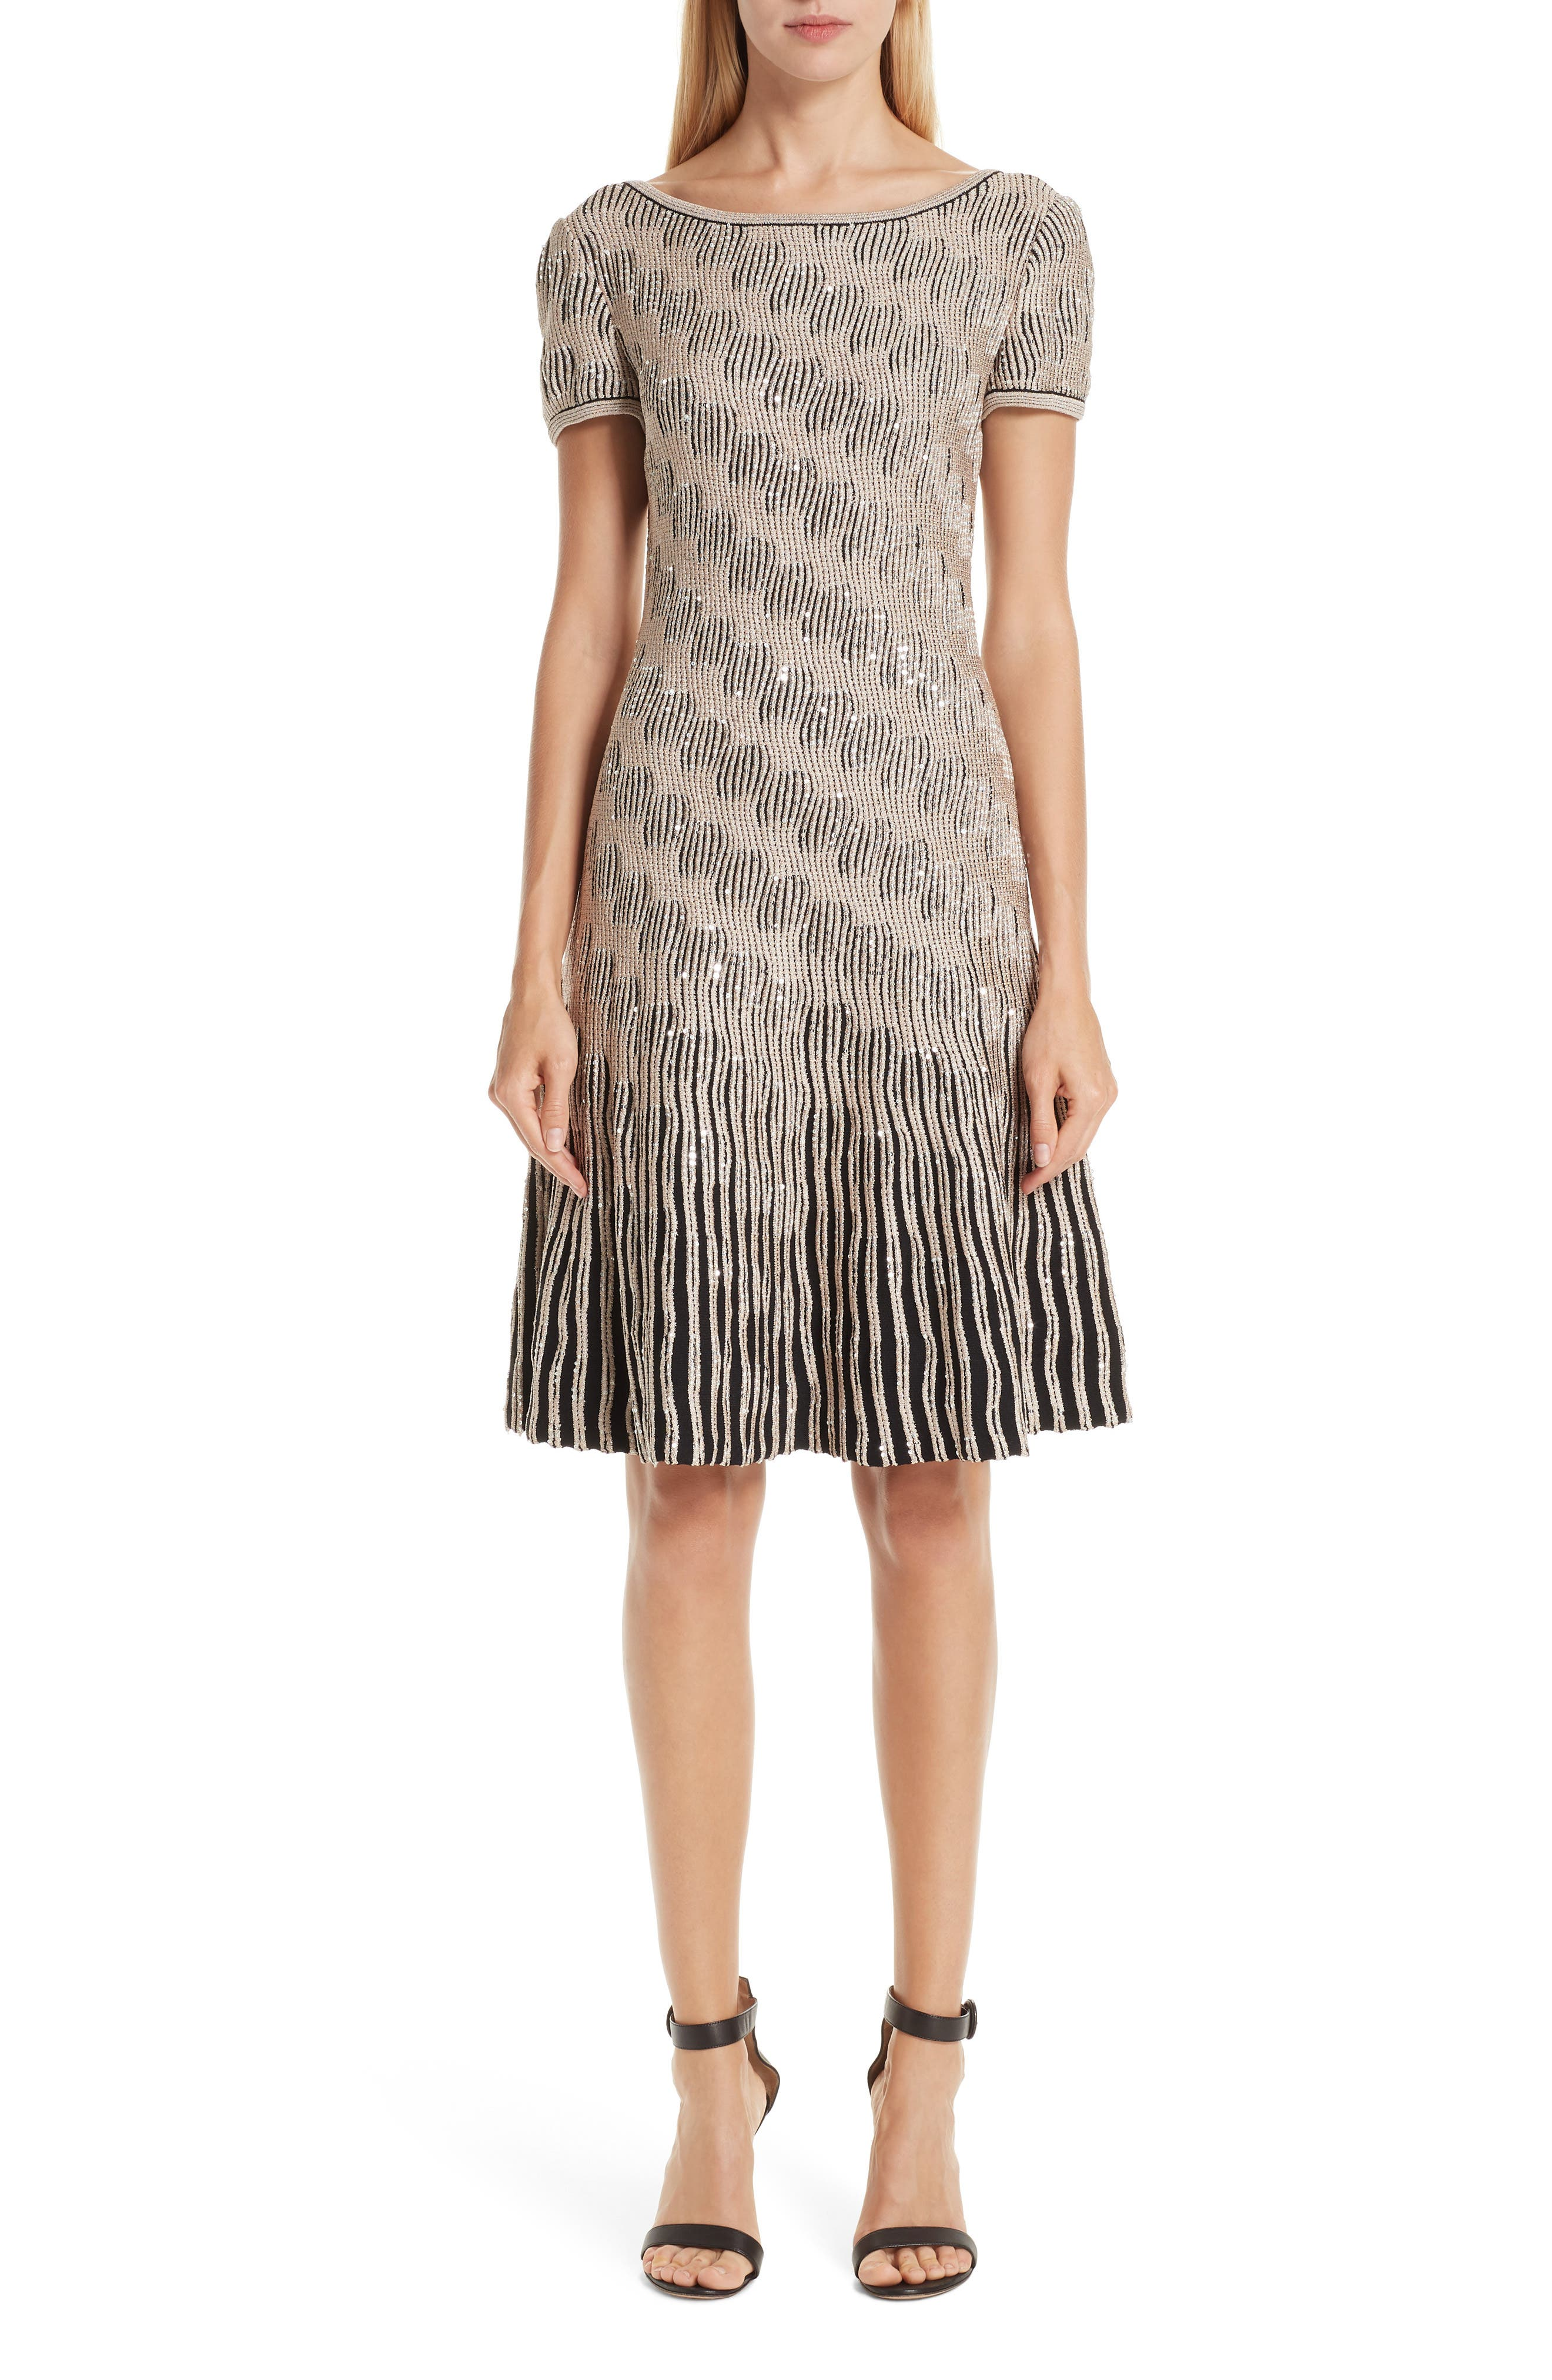 ST. JOHN COLLECTION, Inlaid Sequin Trellis Fit & Flare Dress, Main thumbnail 1, color, CAVIAR